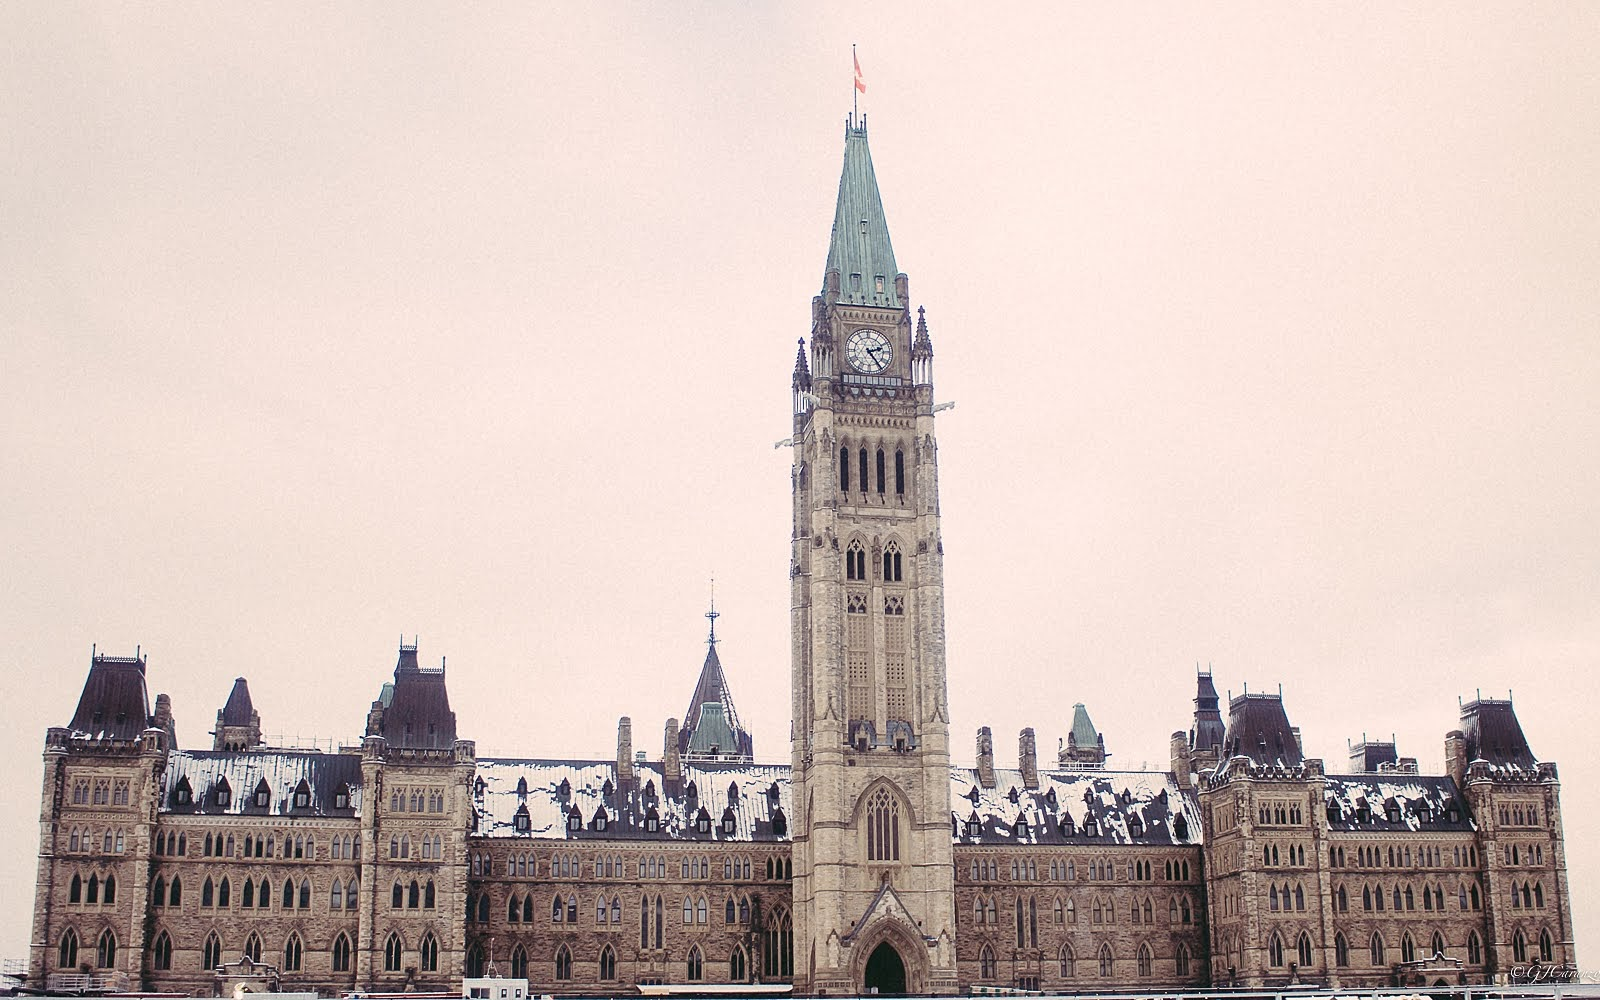 Parliament Hill in Winter: Things To Do in Ottawa, Ontario, Canada